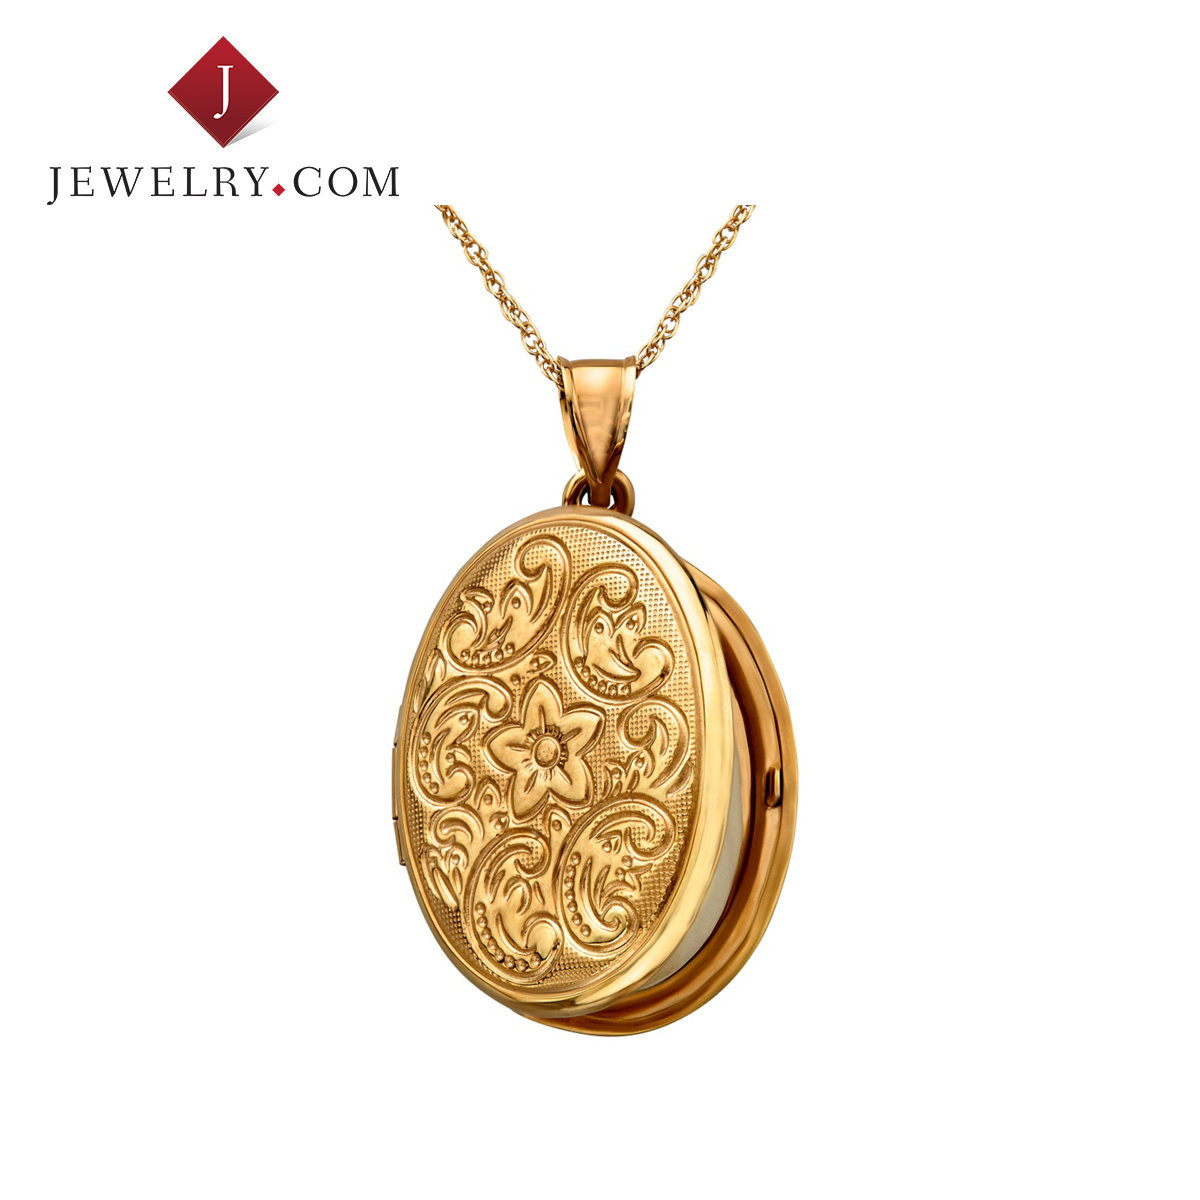 Jewelry.com official silver plated 925 k gold pendant exquisite little box style ladies elegant retro style jewelry